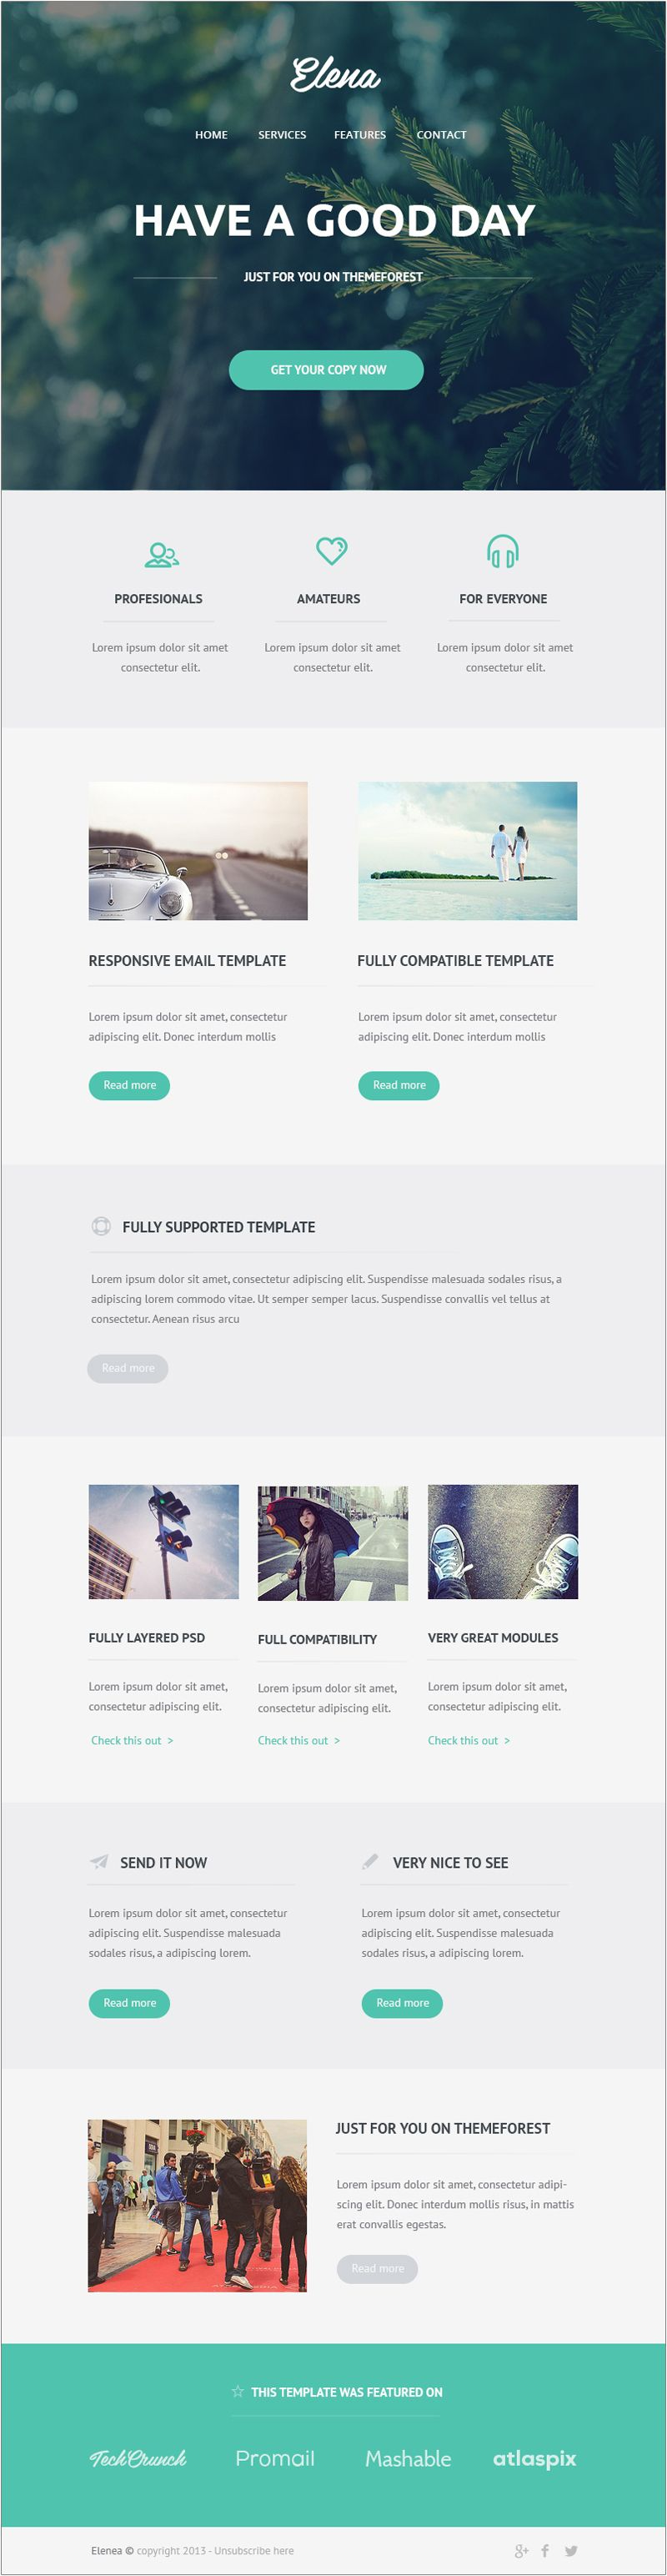 free email newsletter templates psd css author free digital